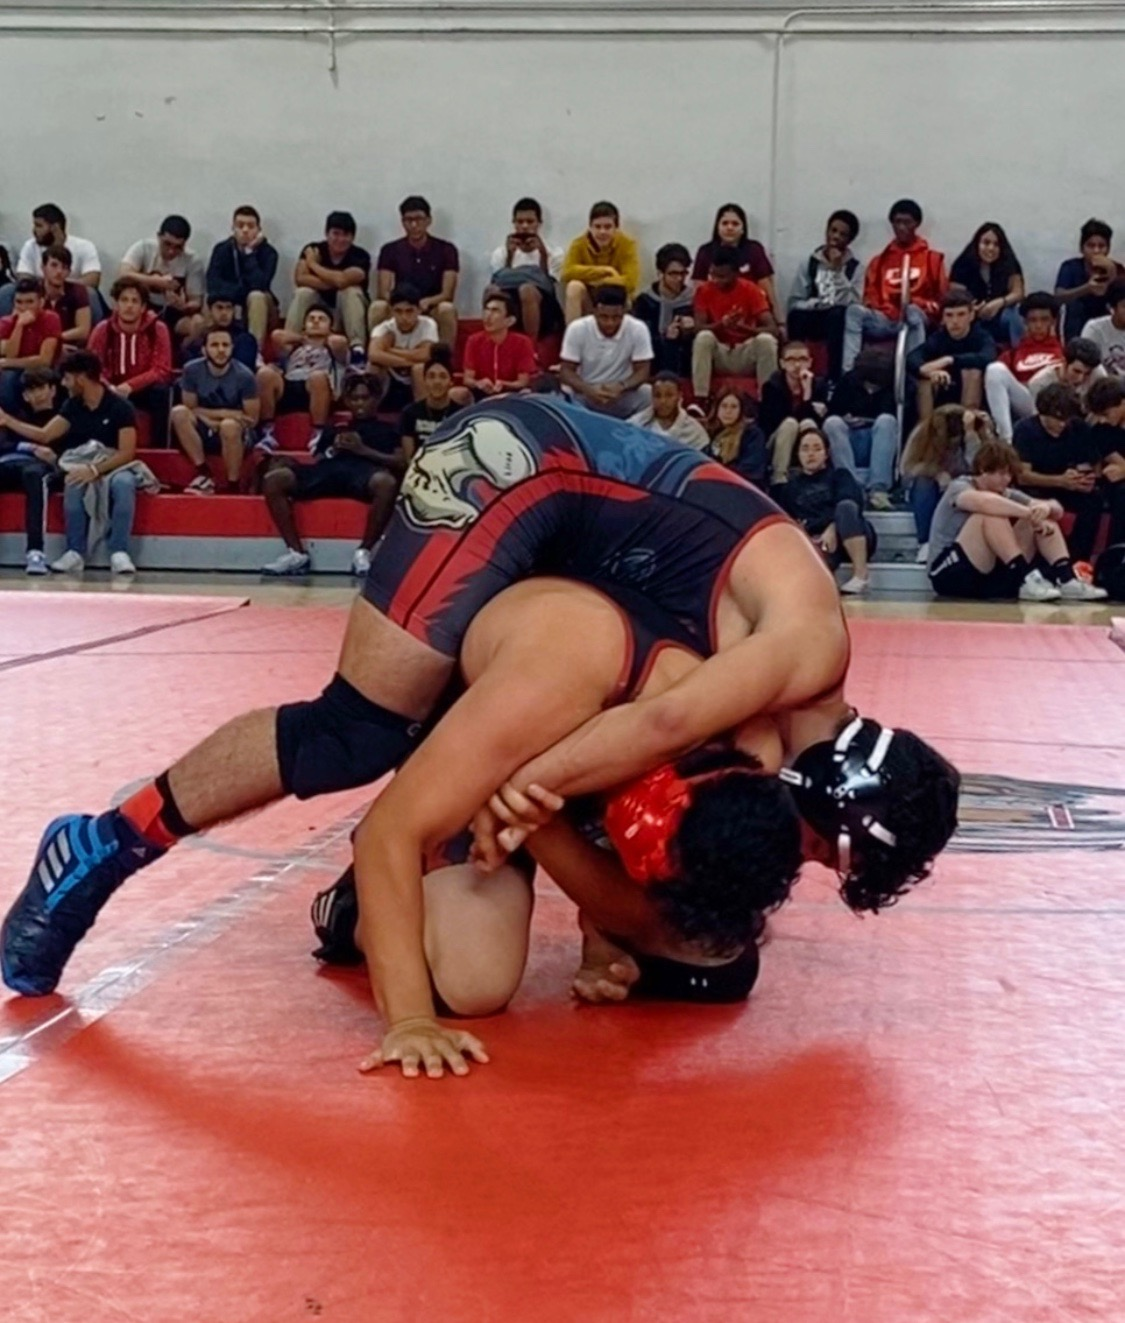 The Gables wrestlers competed against other players on the team to train for a future tournament.